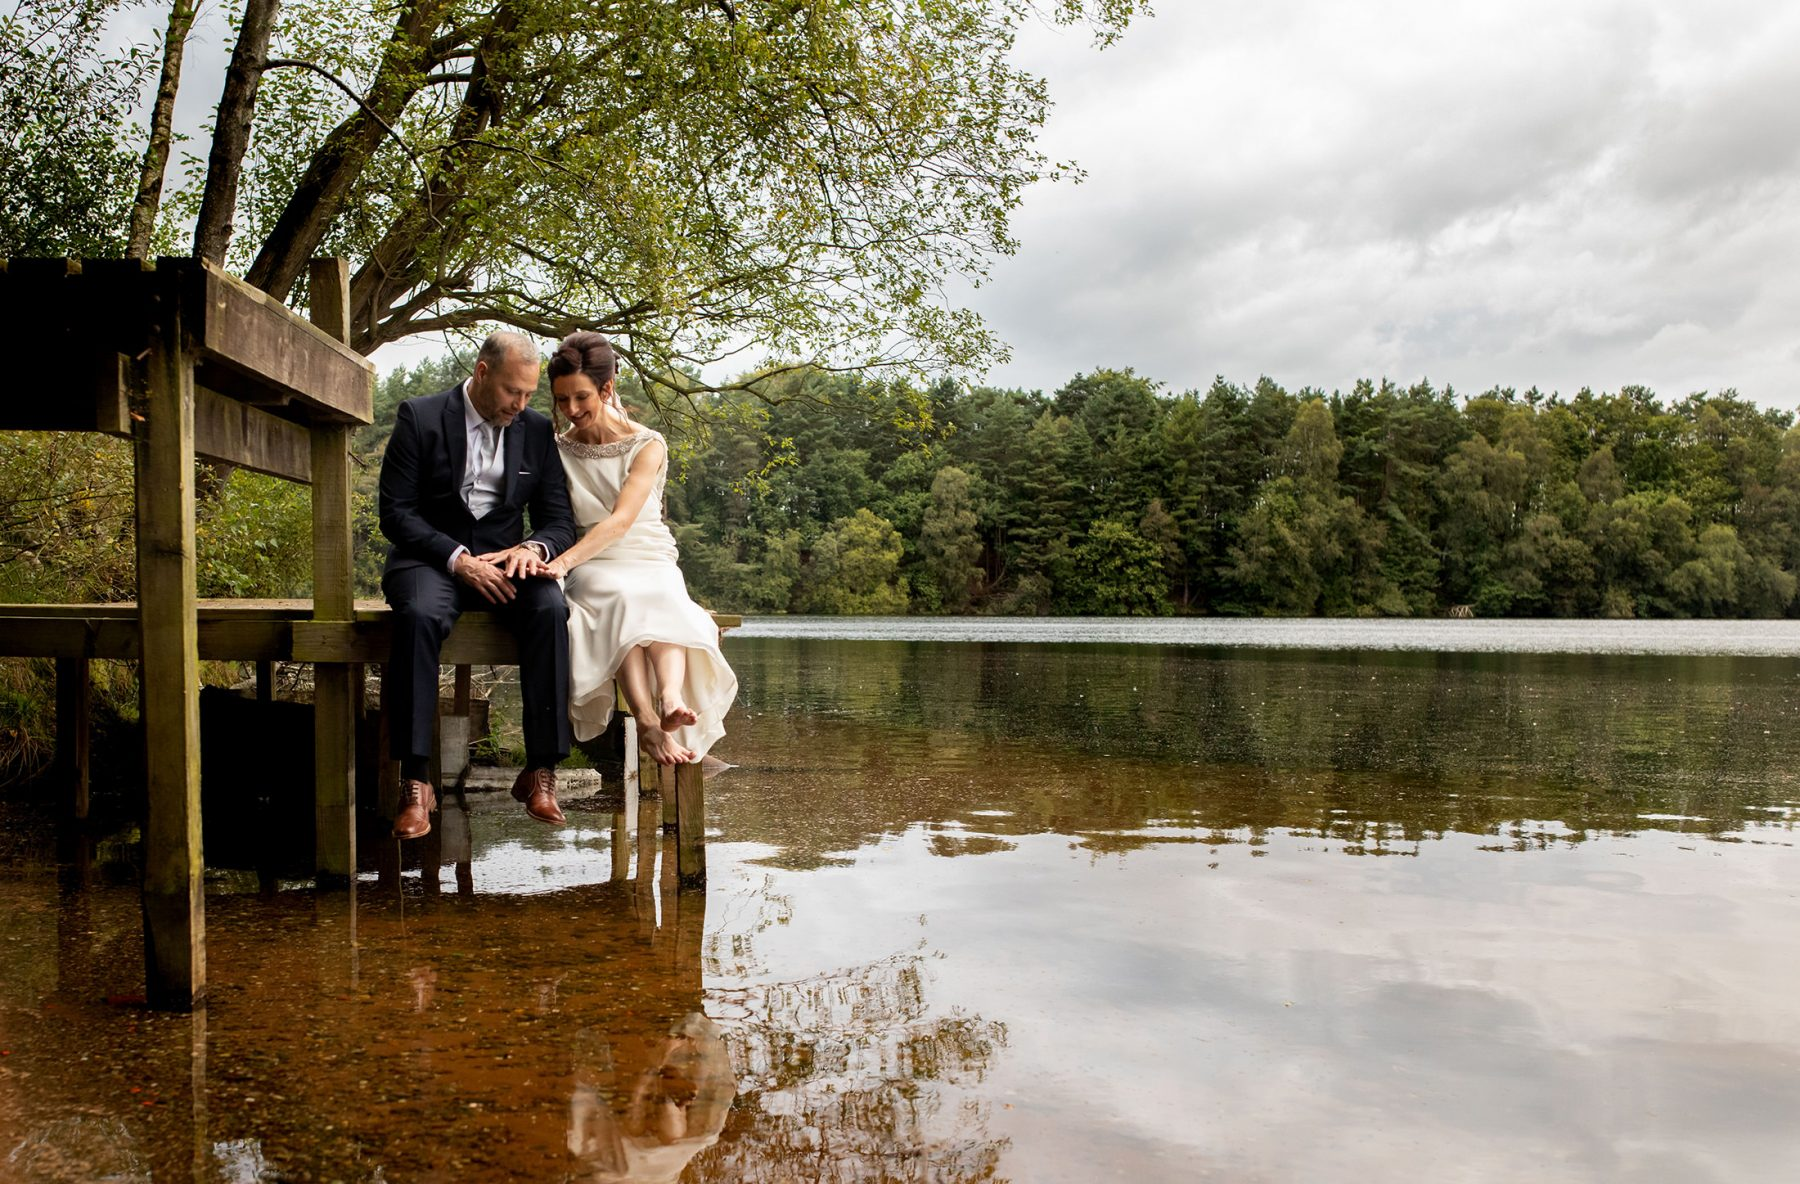 Down by Nunsmere Lake, the bride and groom have time together